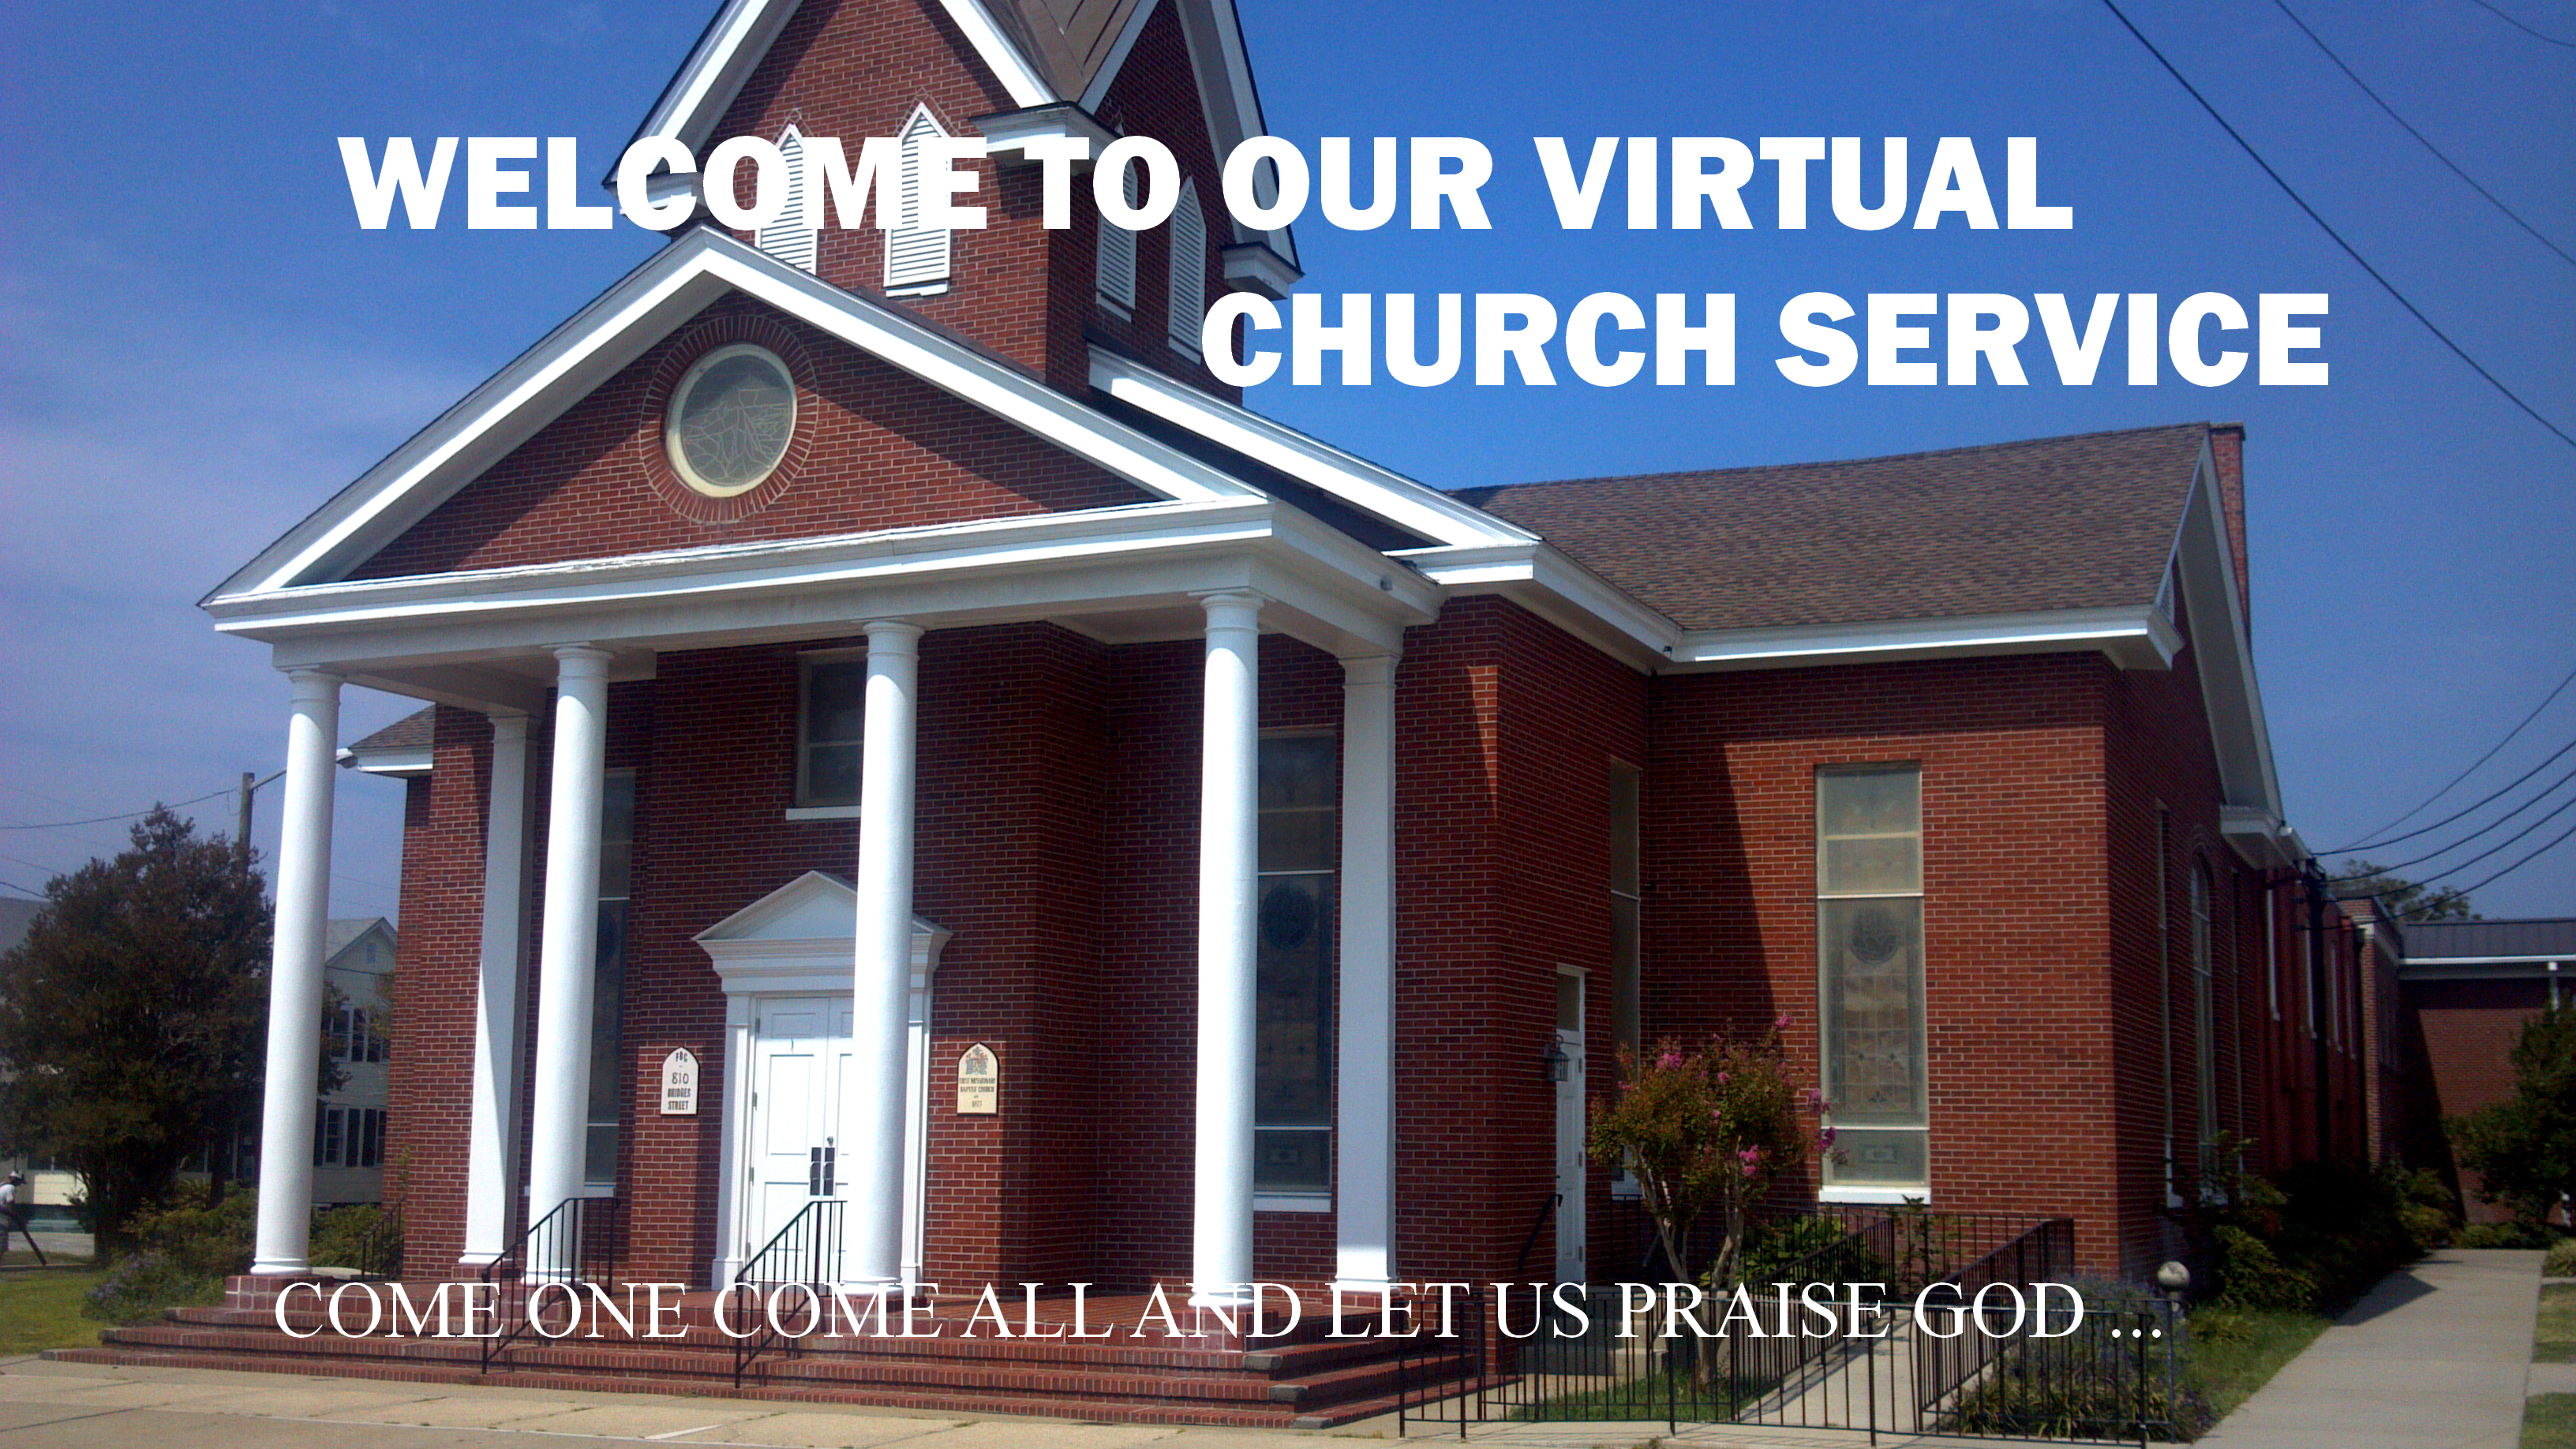 OUR FEATURED CHURCH FOR THIS WEEK IS THE FIRST BAPTIST CHURCH MOREHEAD CITY, N.C.